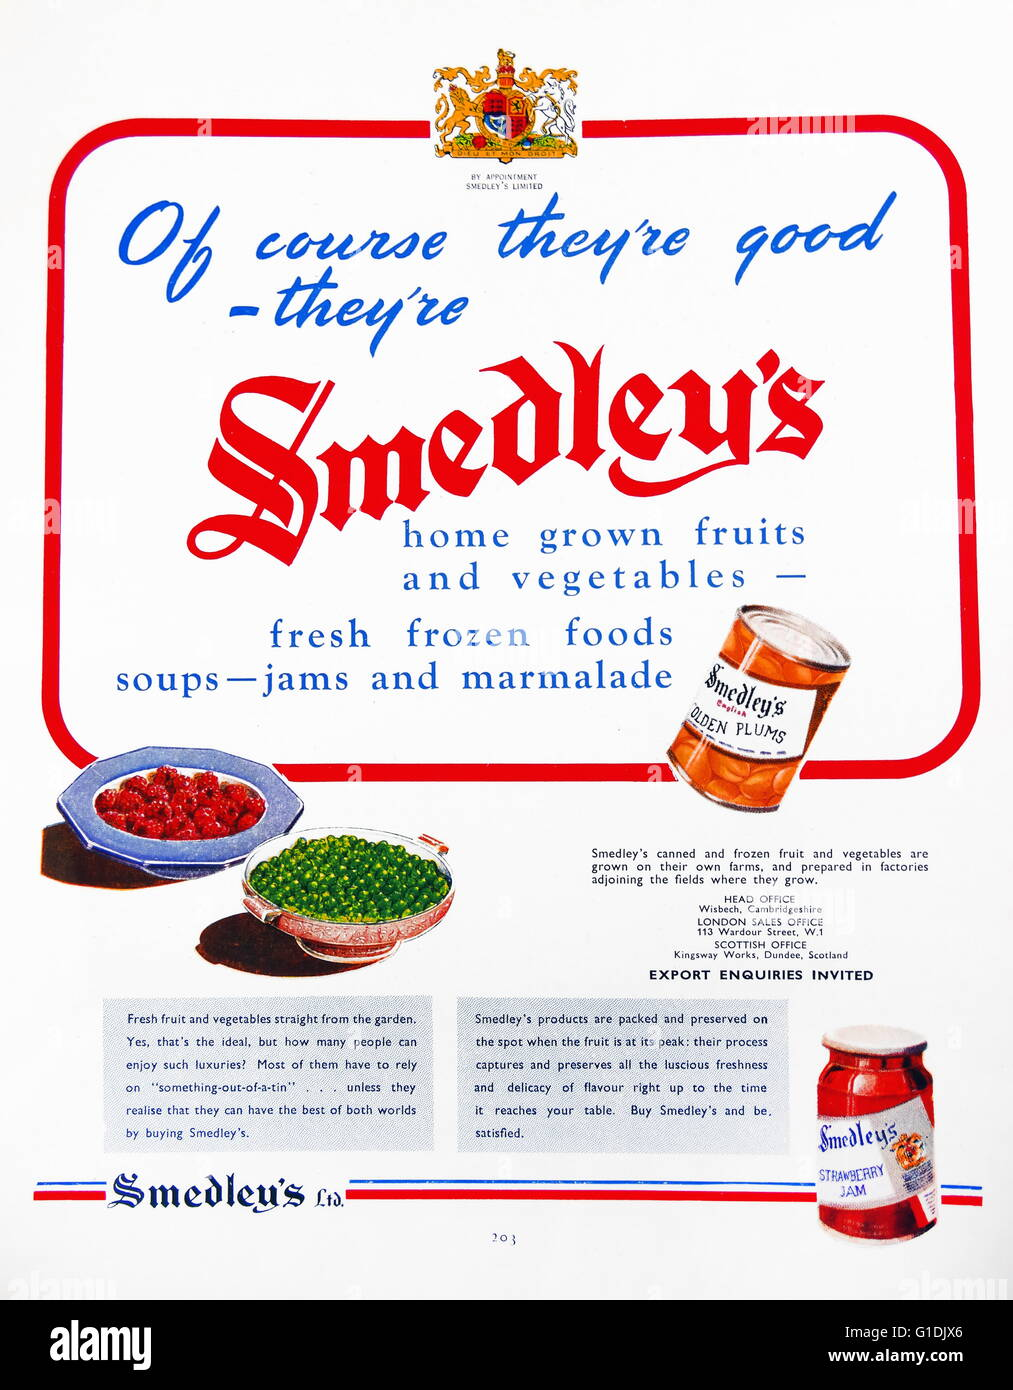 Advert for smedley's preserved fruits, jams and vegetables. Dated 1950 - Stock Image